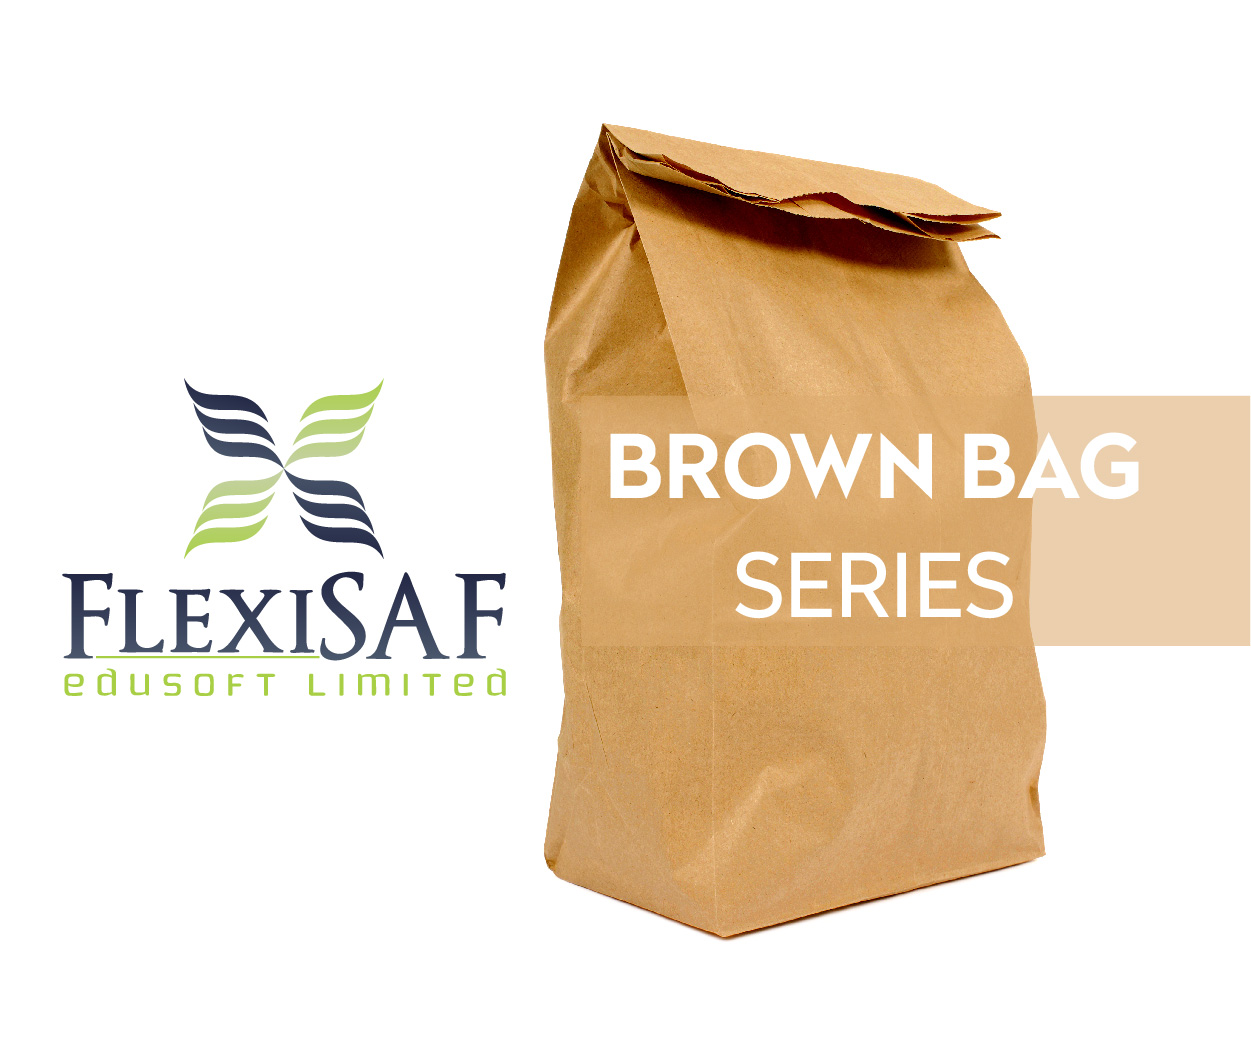 FlexiSAF Brown Bag Series: The relevance of Integration Testing